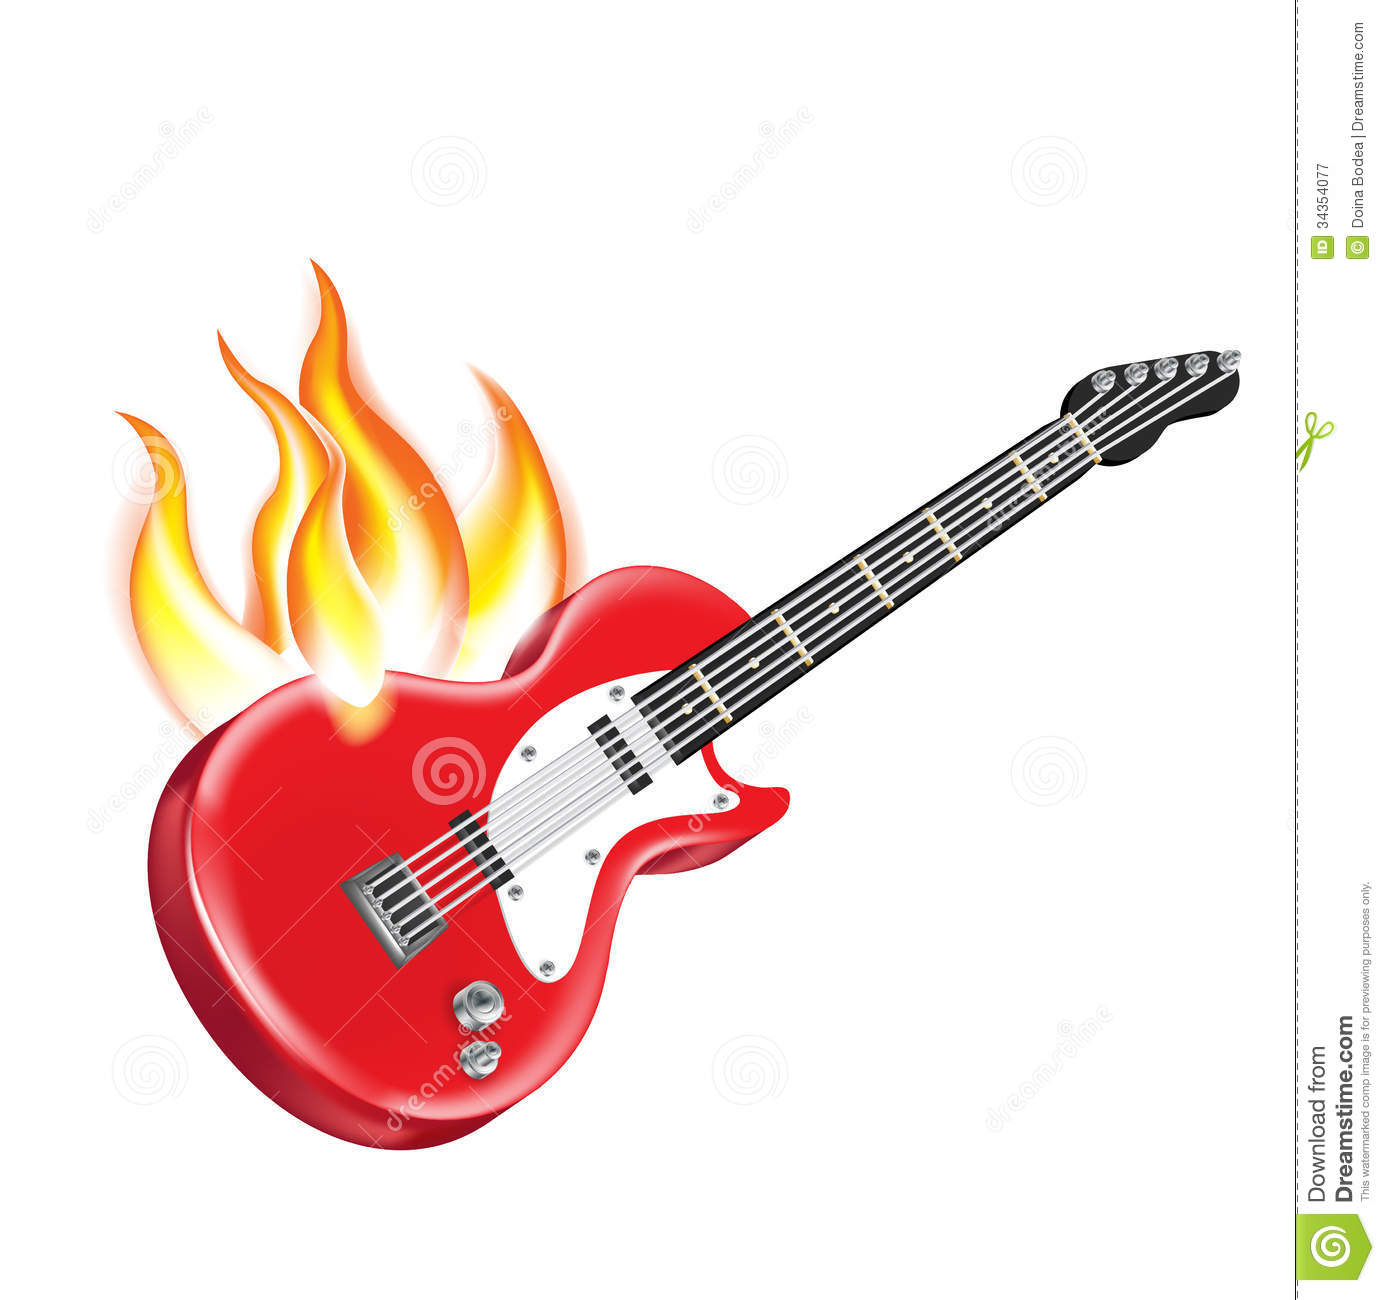 electric guitar on fire clipart panda free clipart images rh clipartpanda com electric guitar clip art black and white electric guitar silhouette clip art